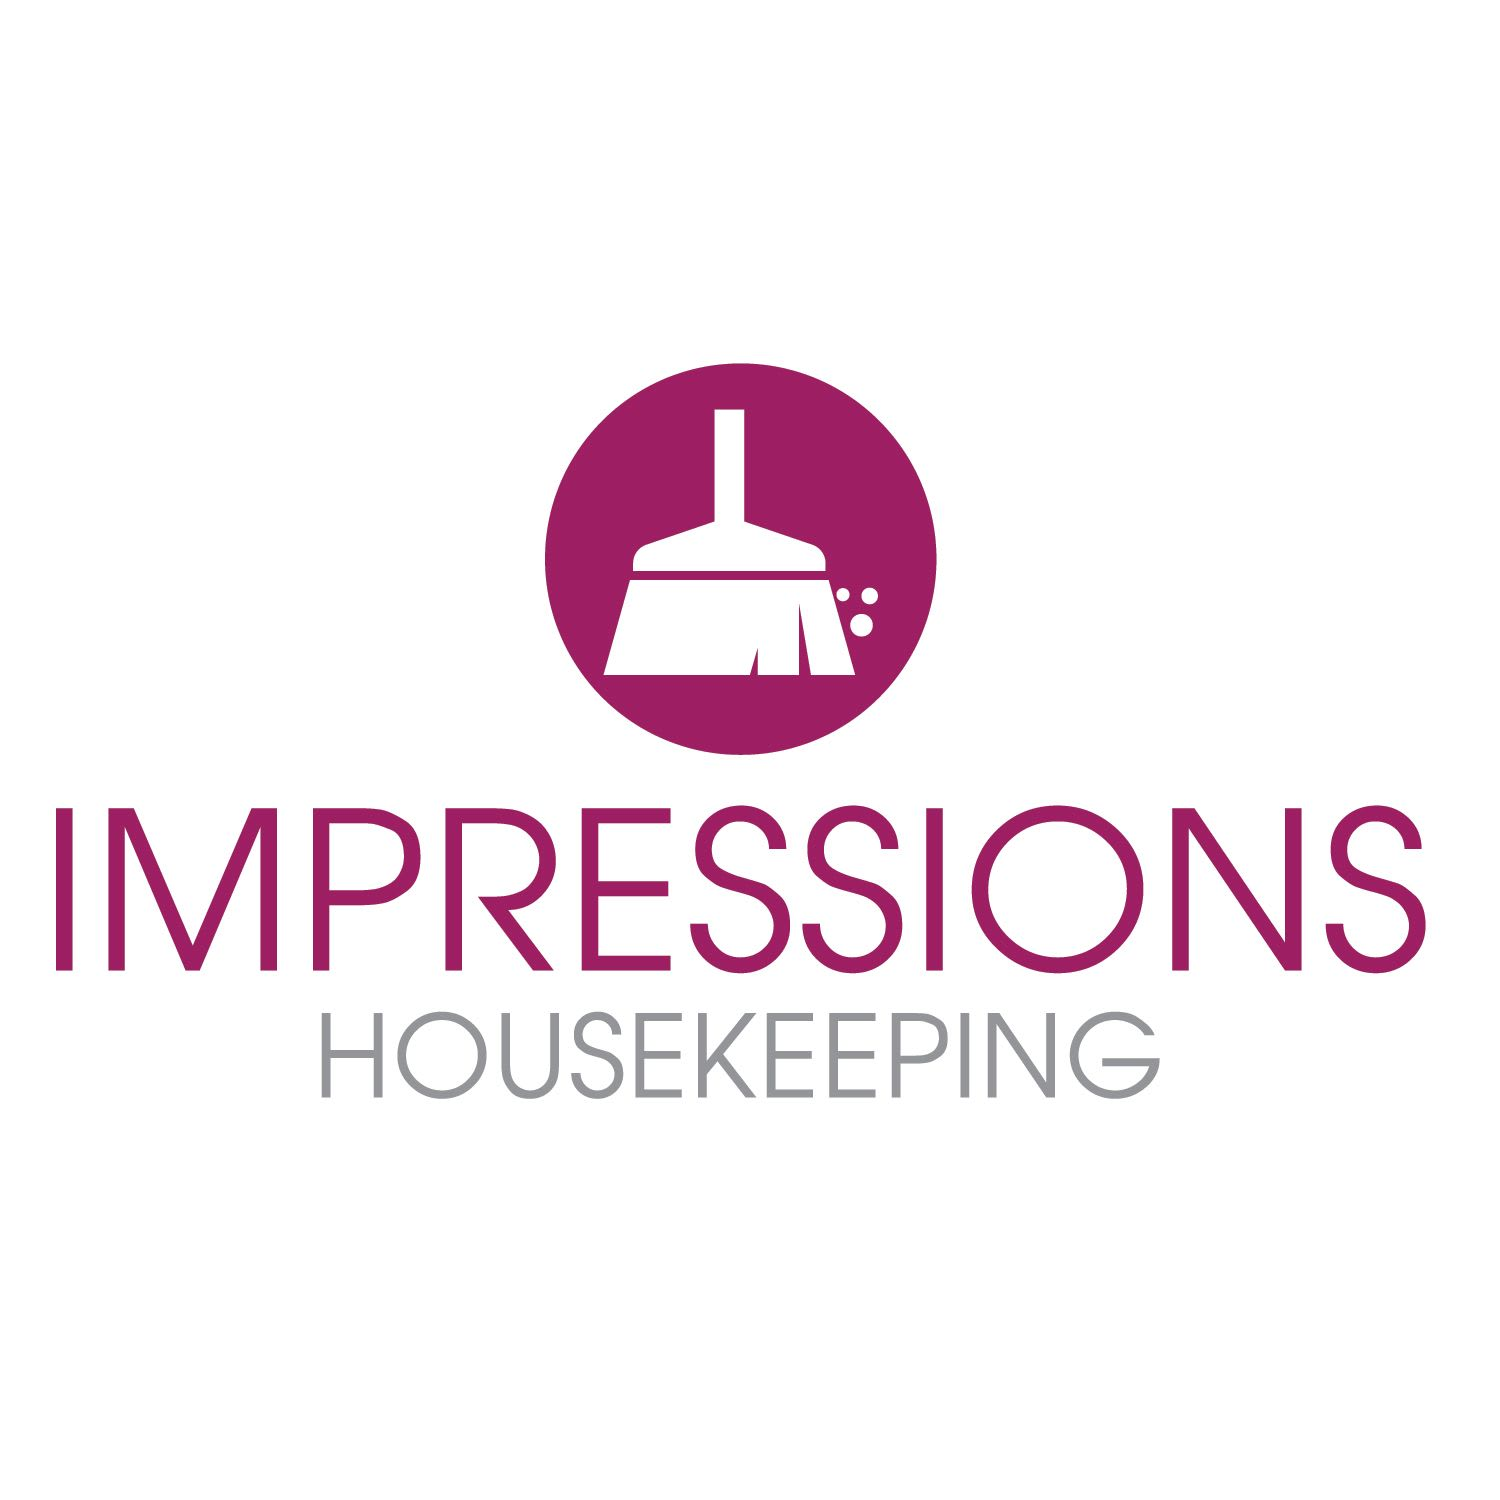 Senior living house keeping impressions in Slidell.